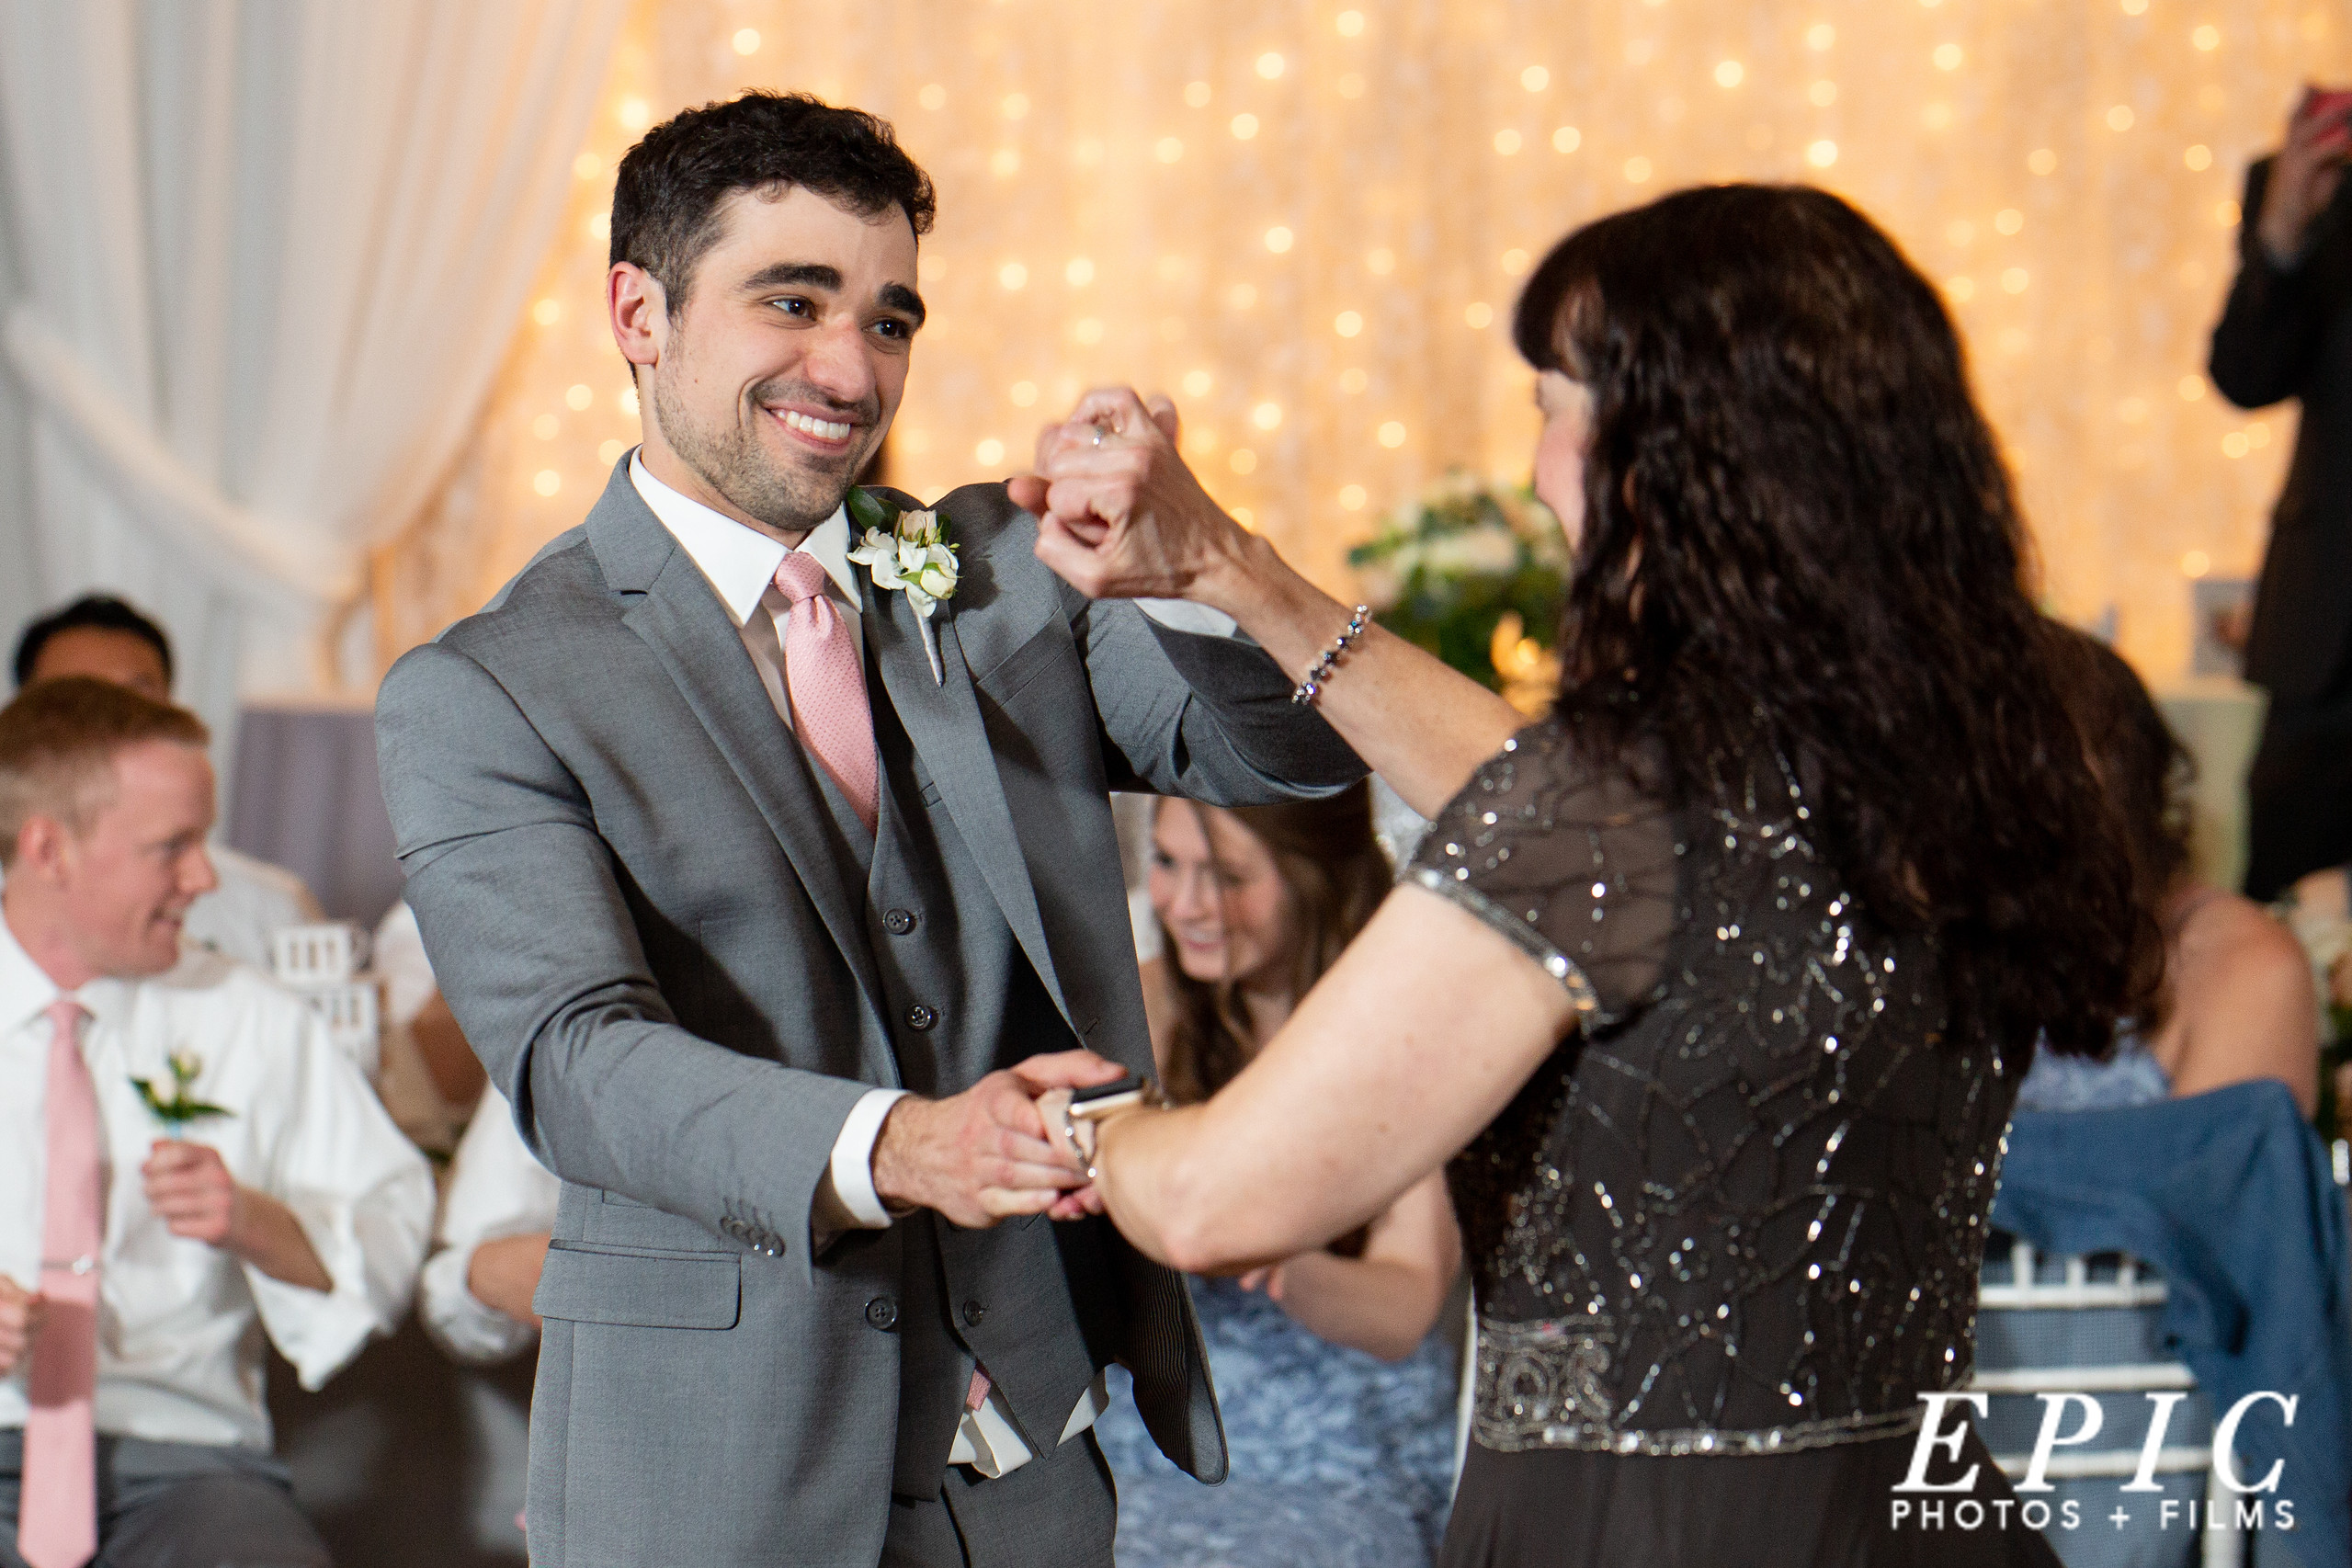 groom dancing with his mother at his wedding